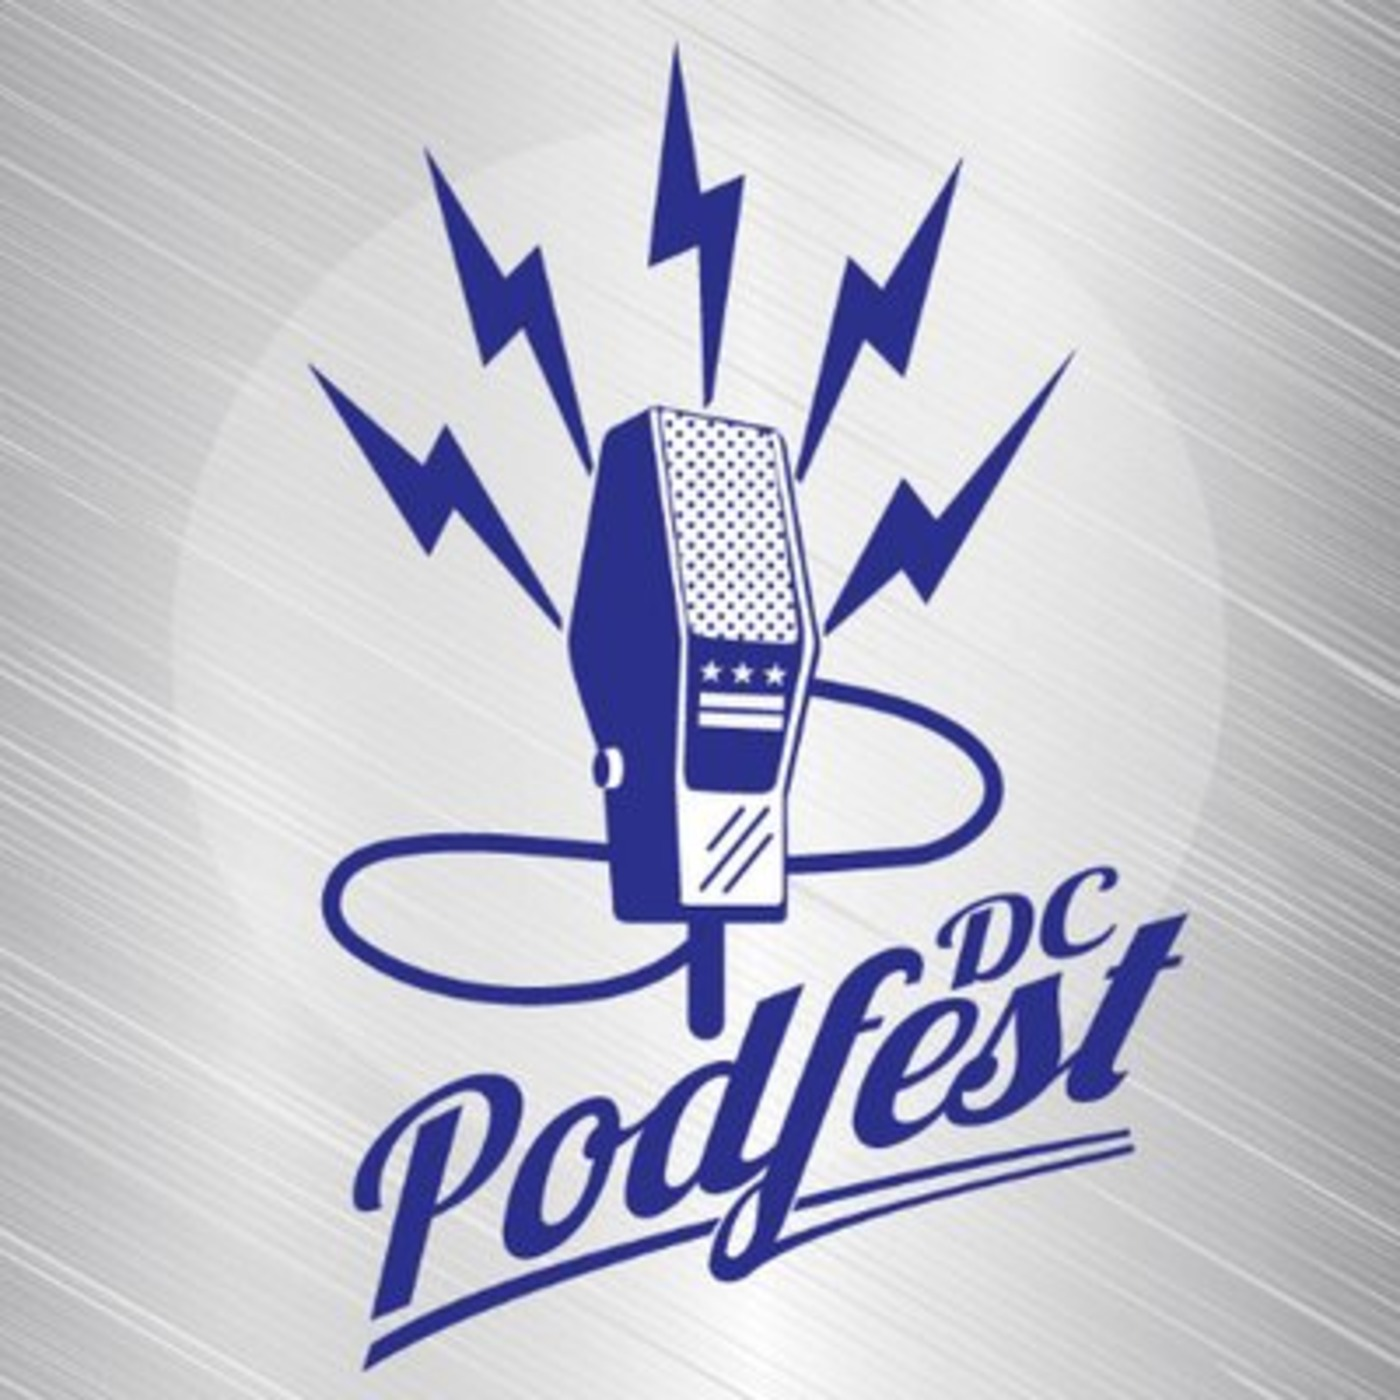 hight resolution of this is a special episode based off of the audio from the great dc podfest panel on diversity in podcasting not all podcasters are white that occurred